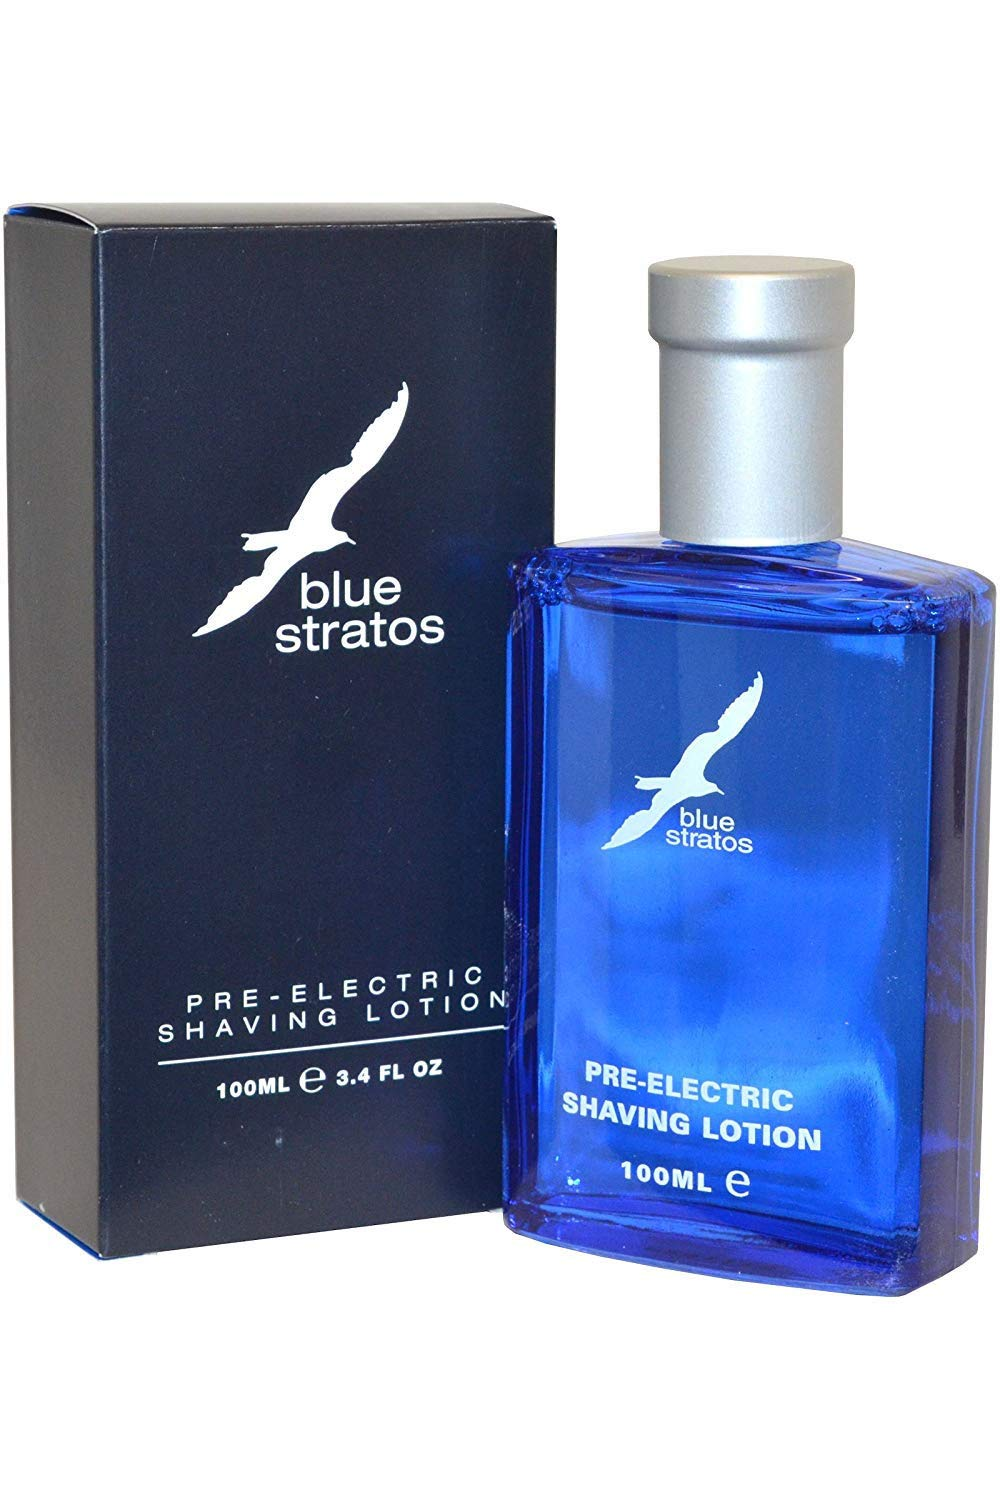 Blue Stratos by Blue Stratos Pre-Electric Shaving Lotion 100ml 5030147441102